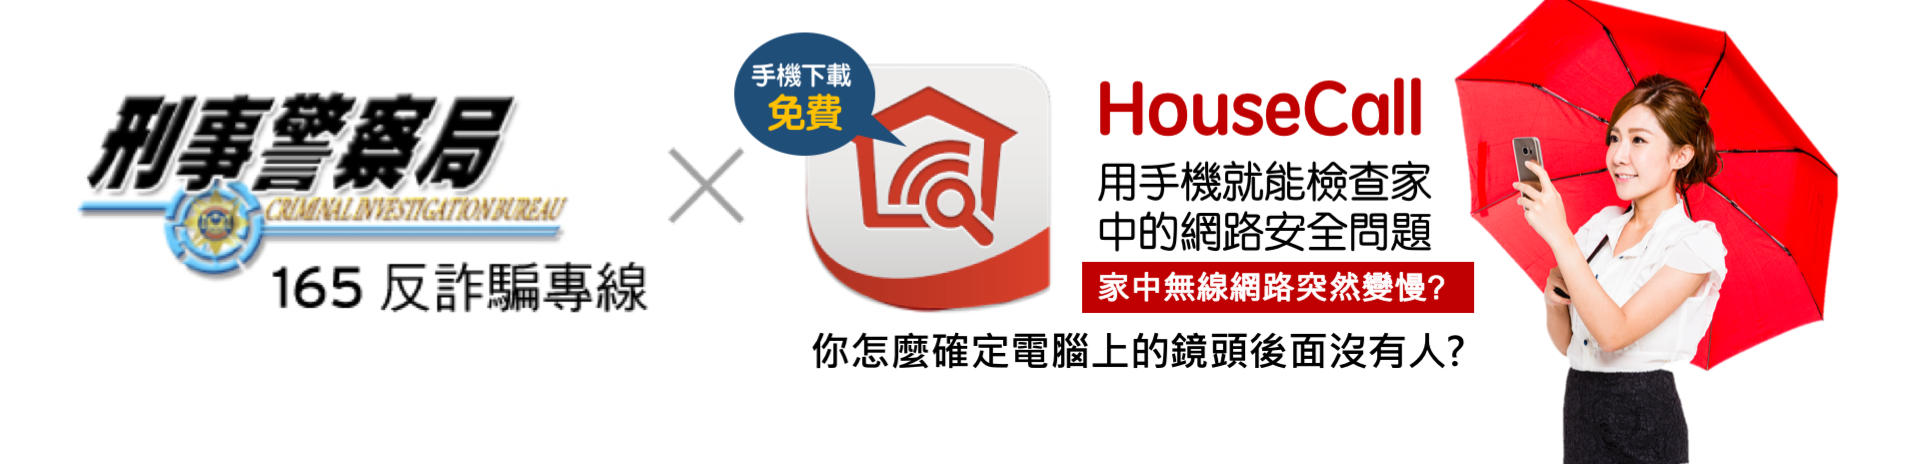 Houscall for home network security scanner 檢查家中網路 家裡網路變慢 網路好慢